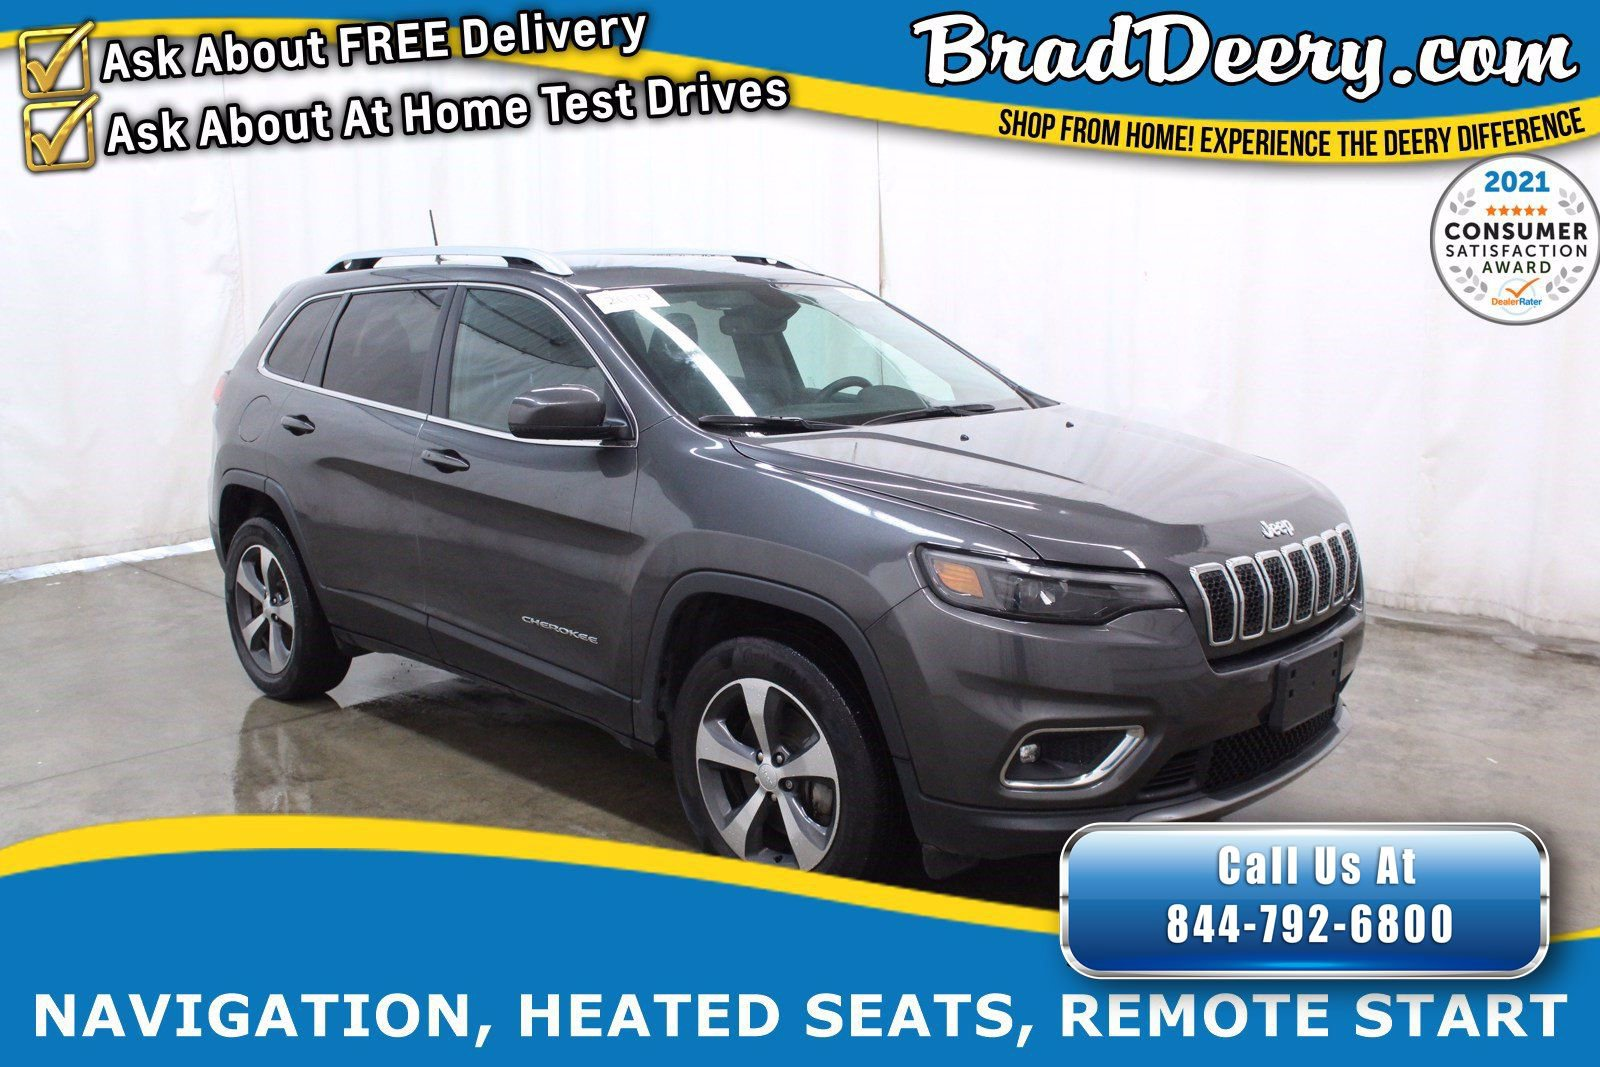 2019 Jeep Cherokee Limited 4X4 w/ Navigation, Heated Leather, Remote Start, Power Liftgate & Trailer Tow Pkg.